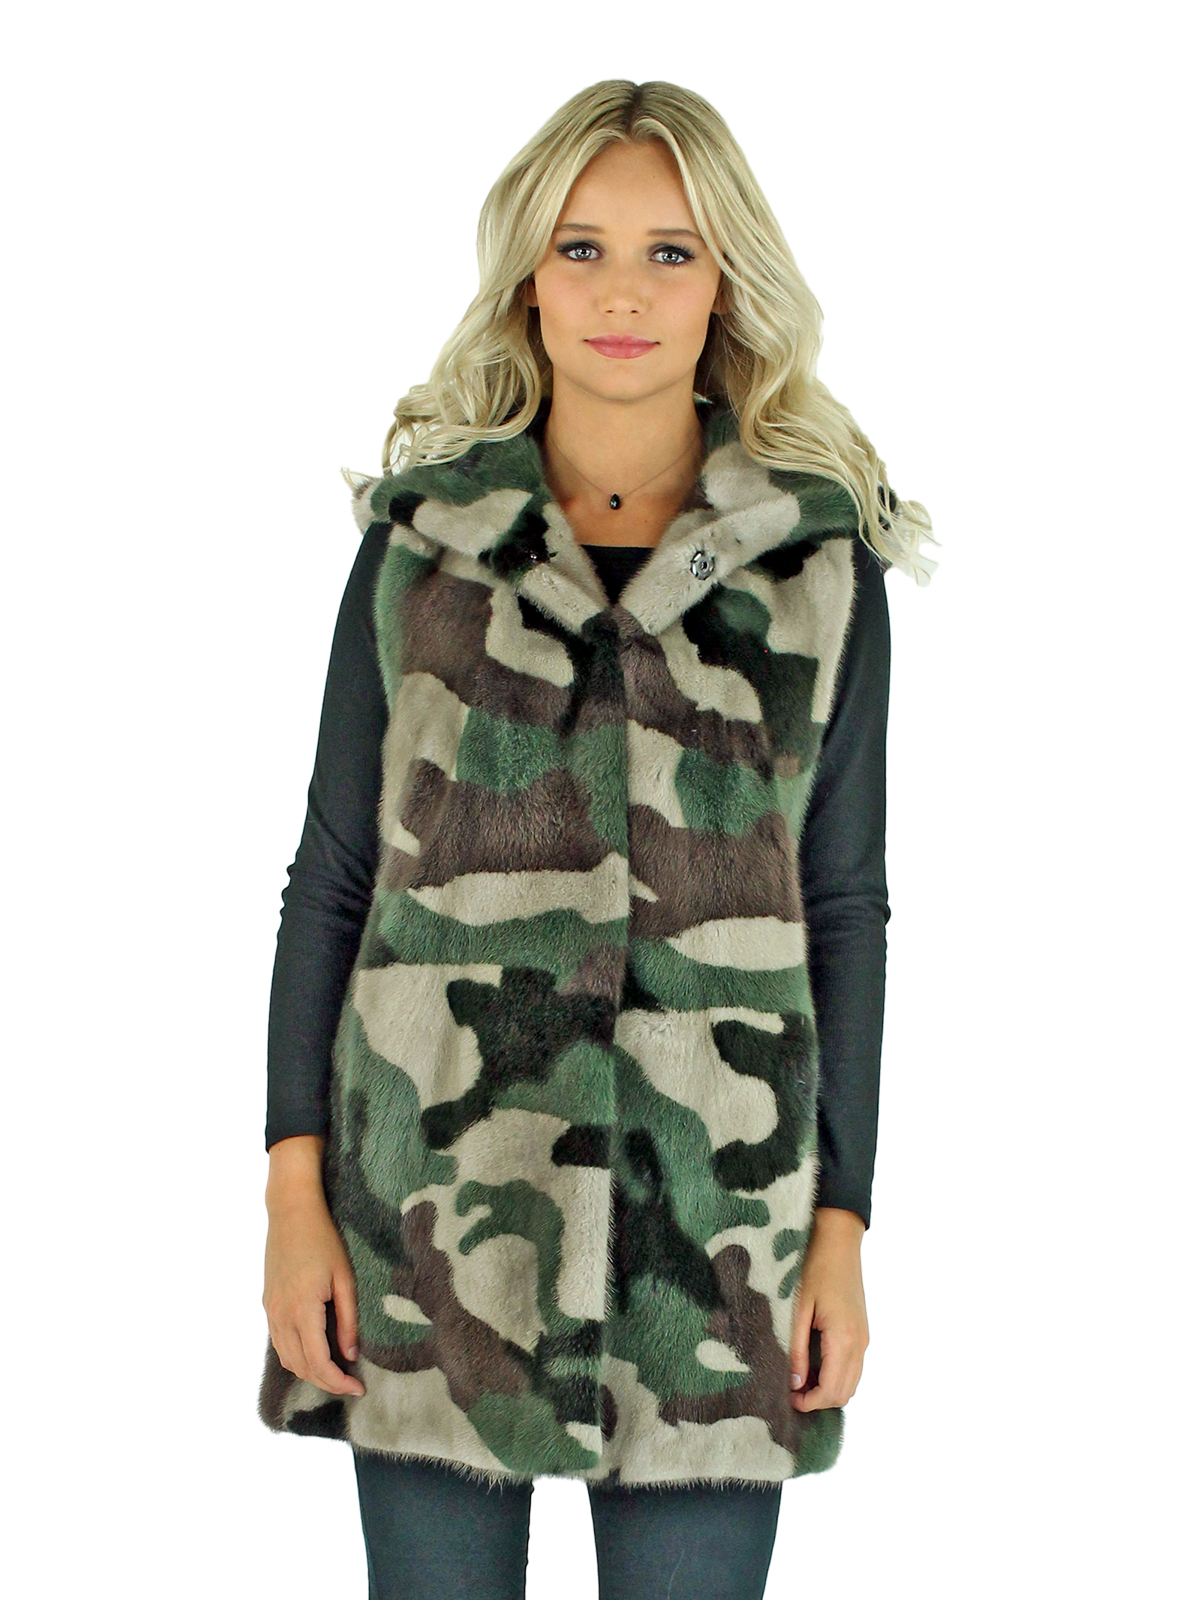 Woman's Camo Mink Fur Vest with Hood